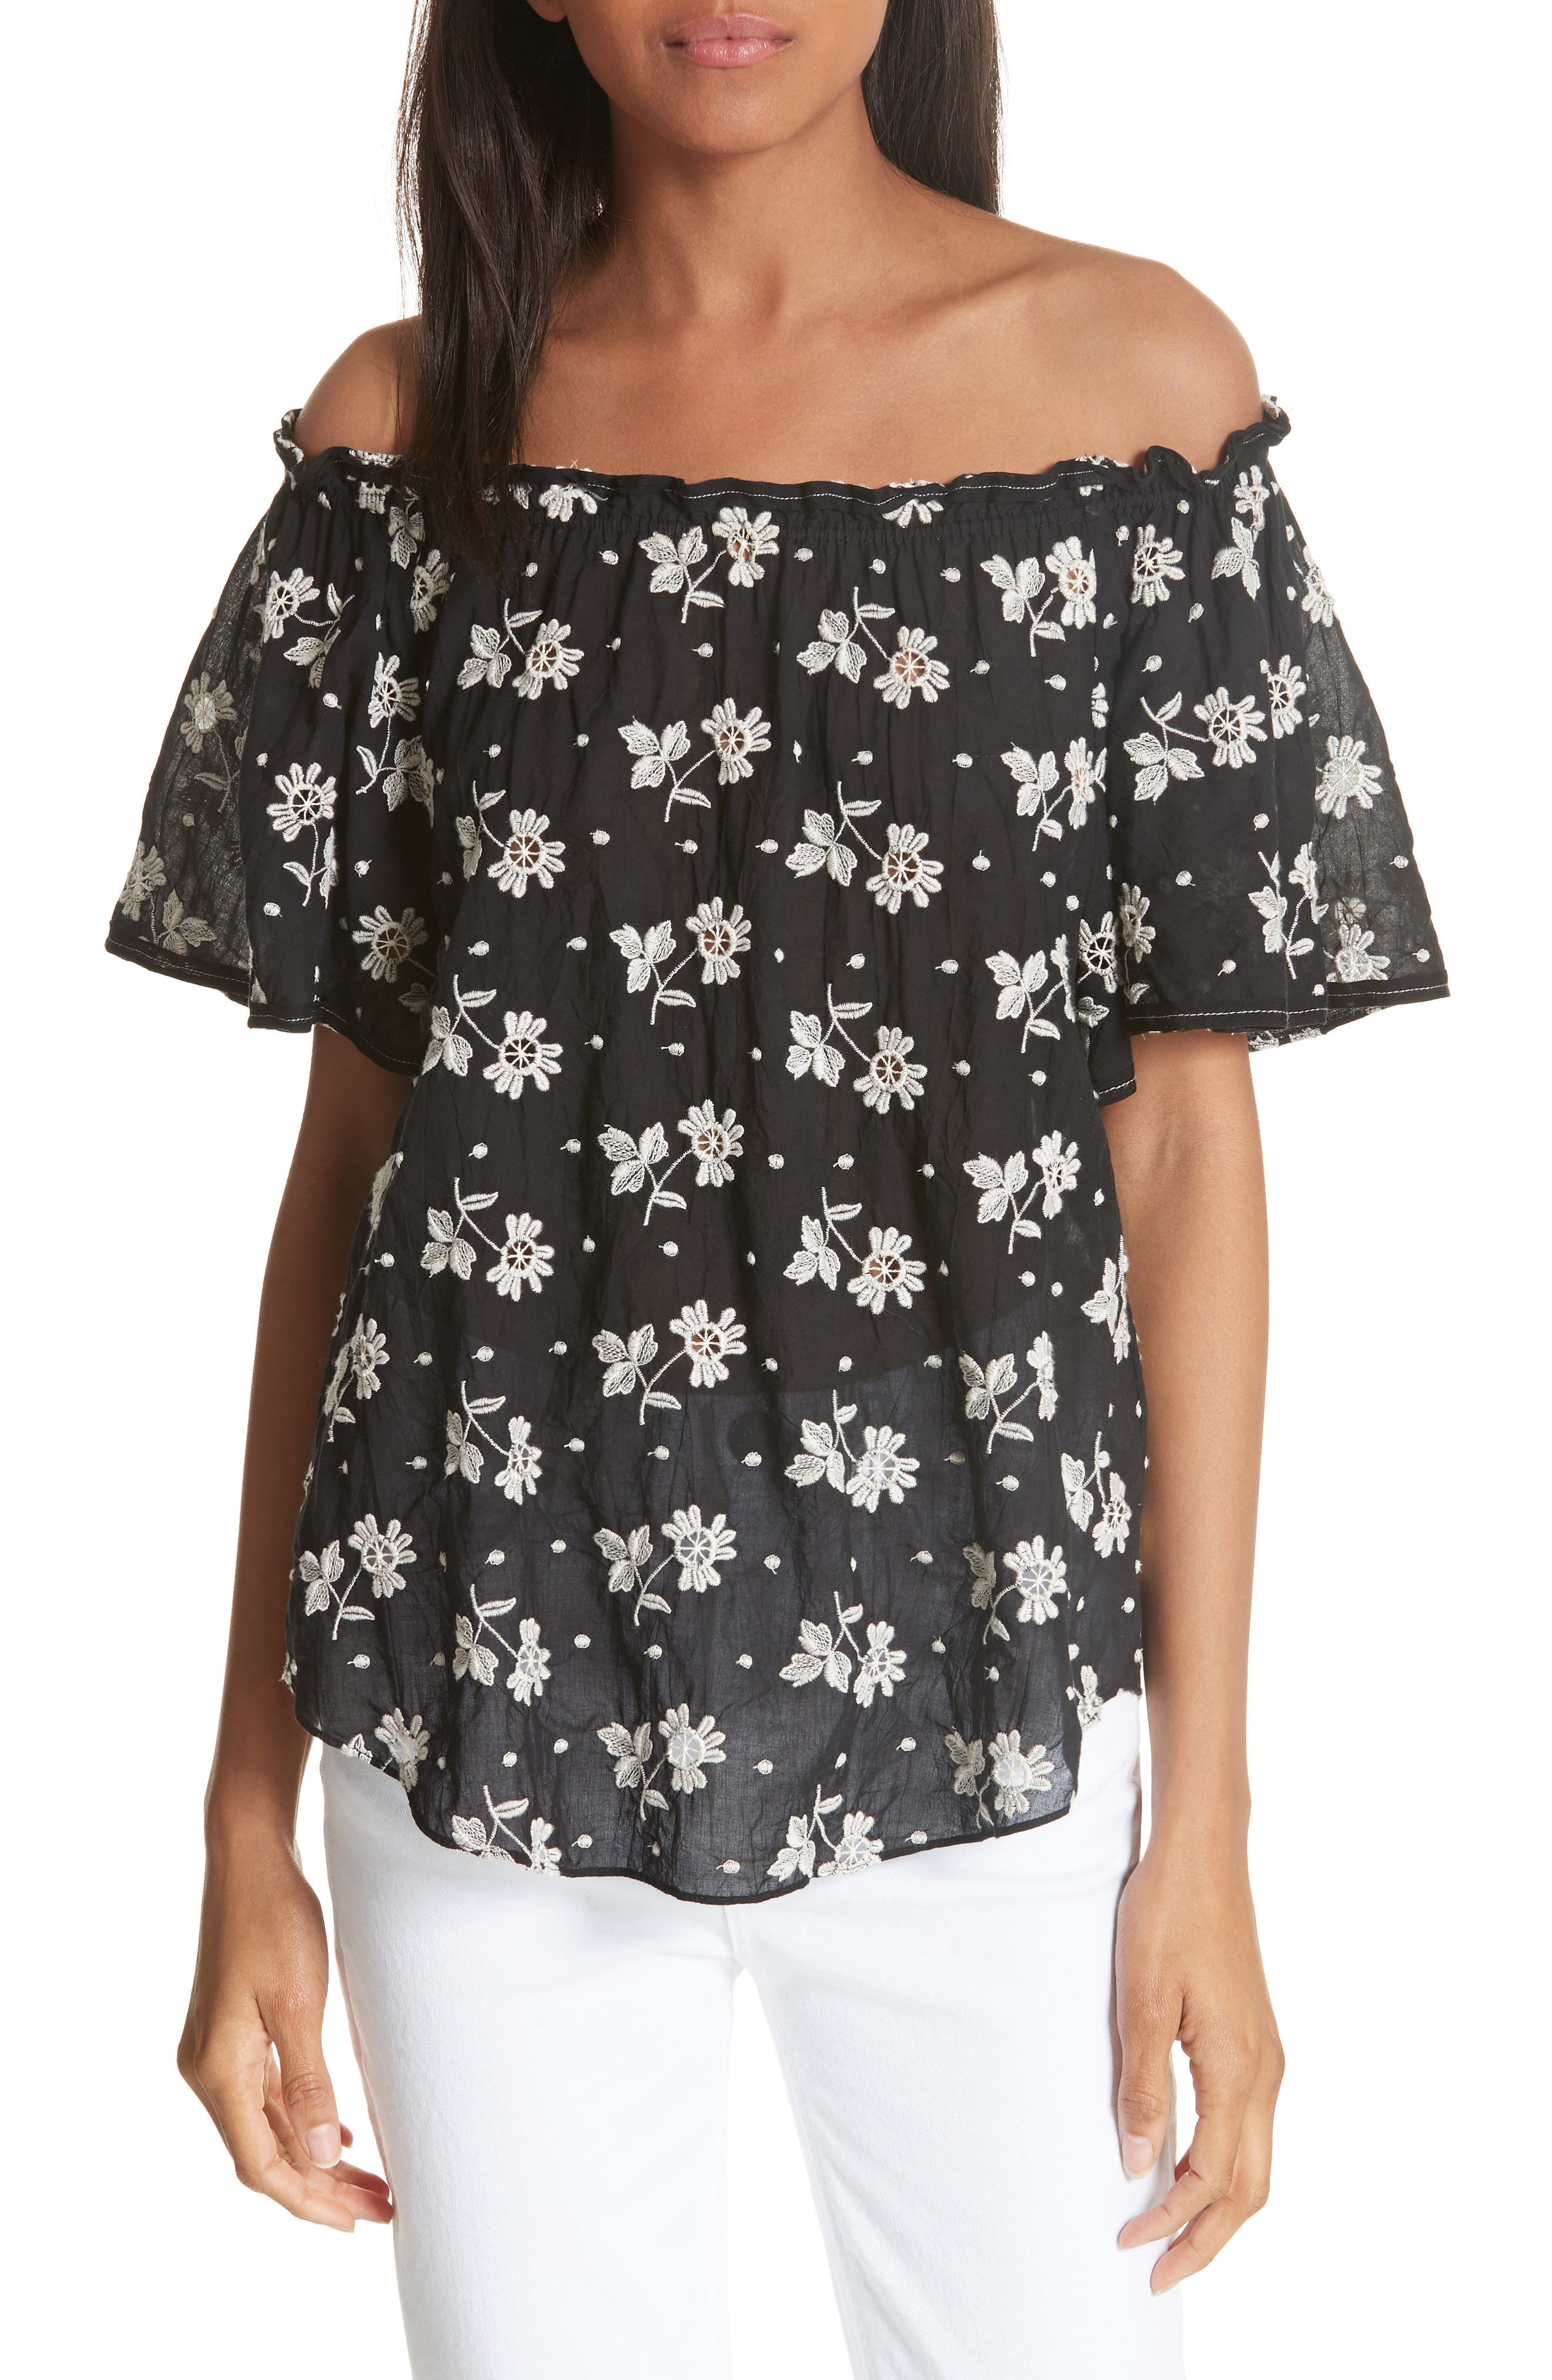 La Vie Rebecca Taylor Helene Embroidery Off the Shoulder Cotton Blouse